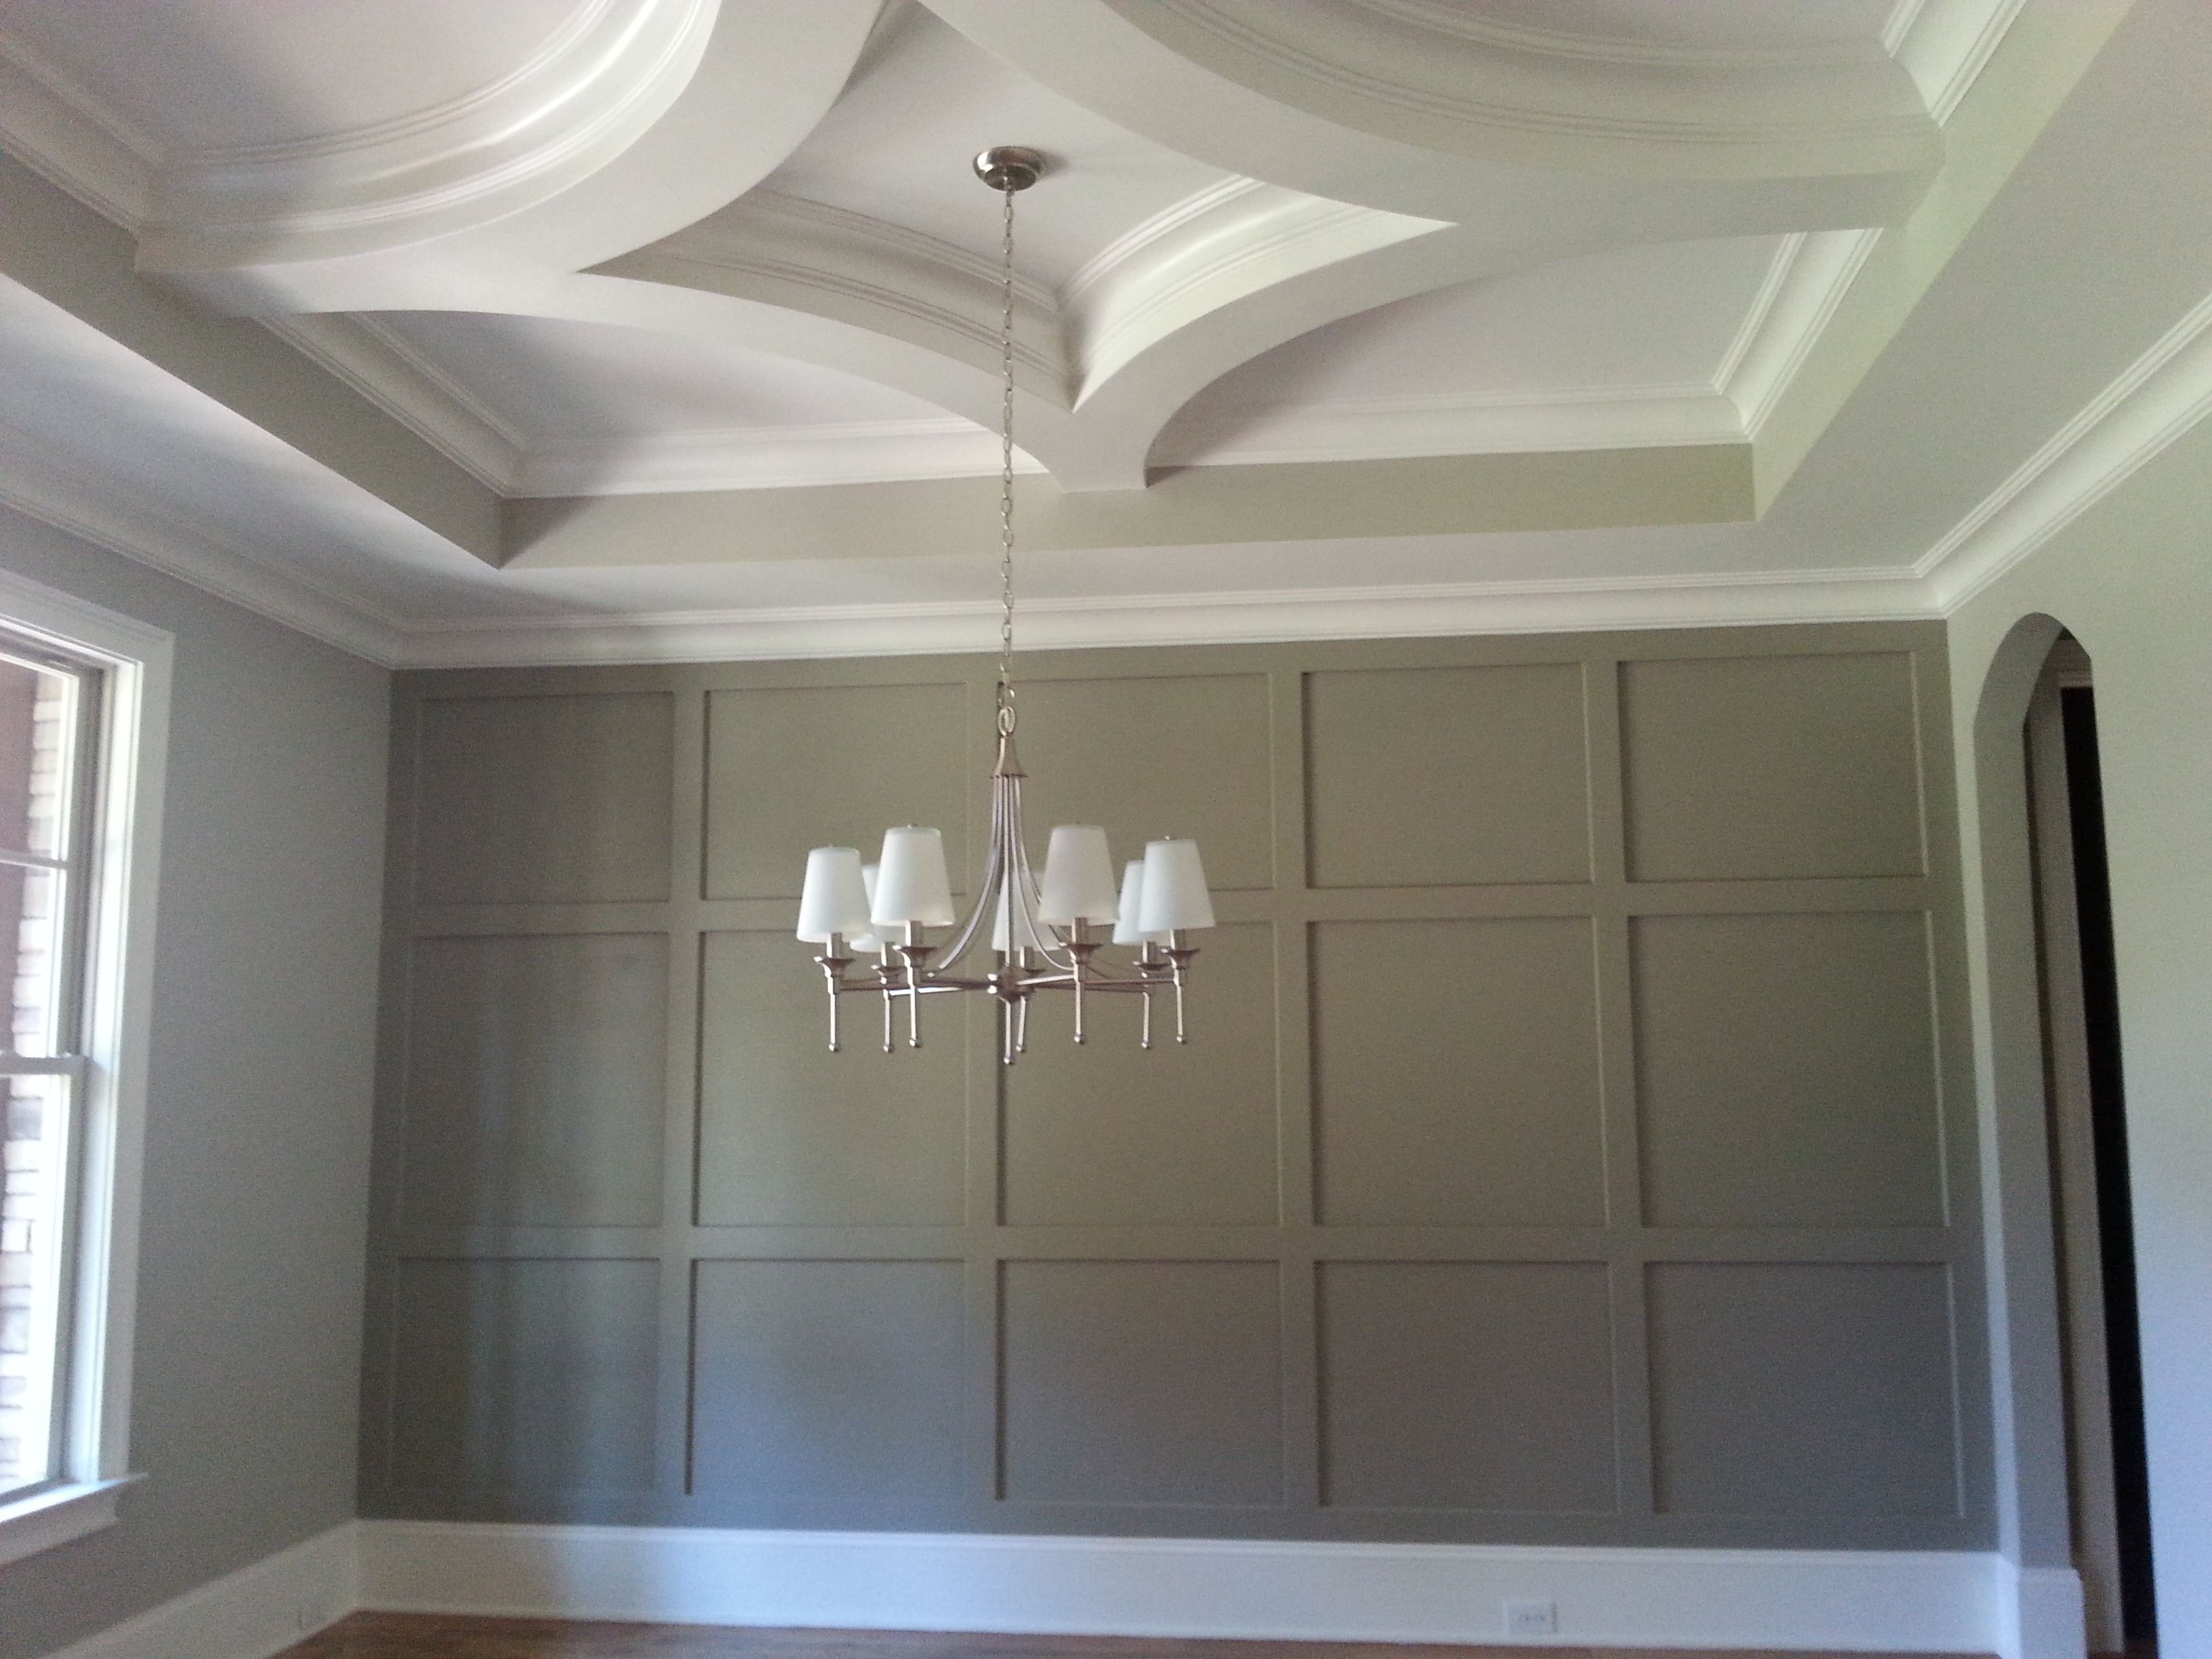 A Very Impressive Room Includes Arched Entrance Paneled Wall